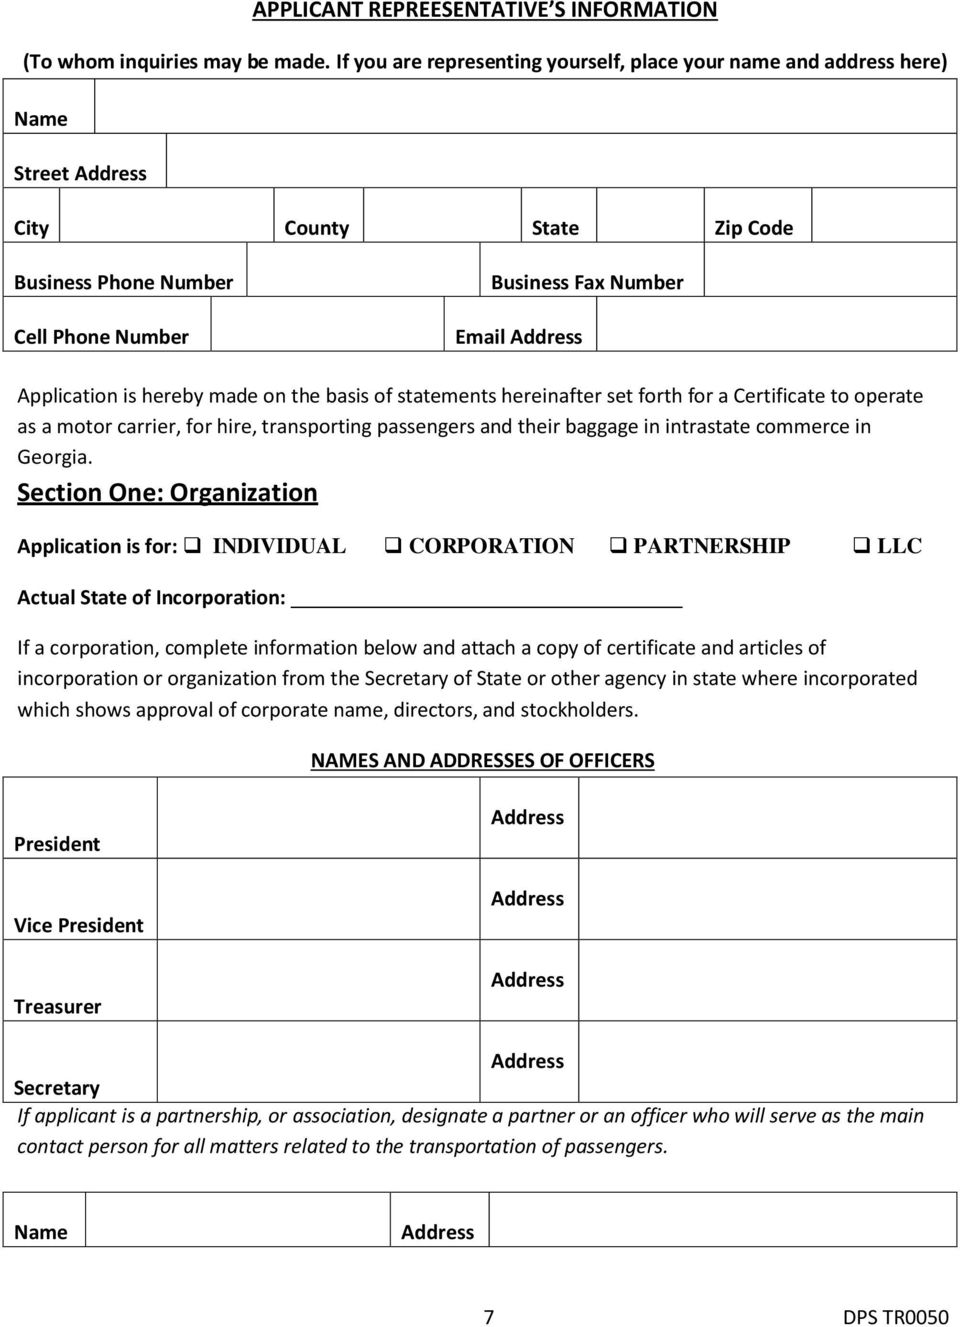 Application is hereby made on the basis of statements hereinafter set forth for a Certificate to operate as a motor carrier, for hire, transporting passengers and their baggage in intrastate commerce